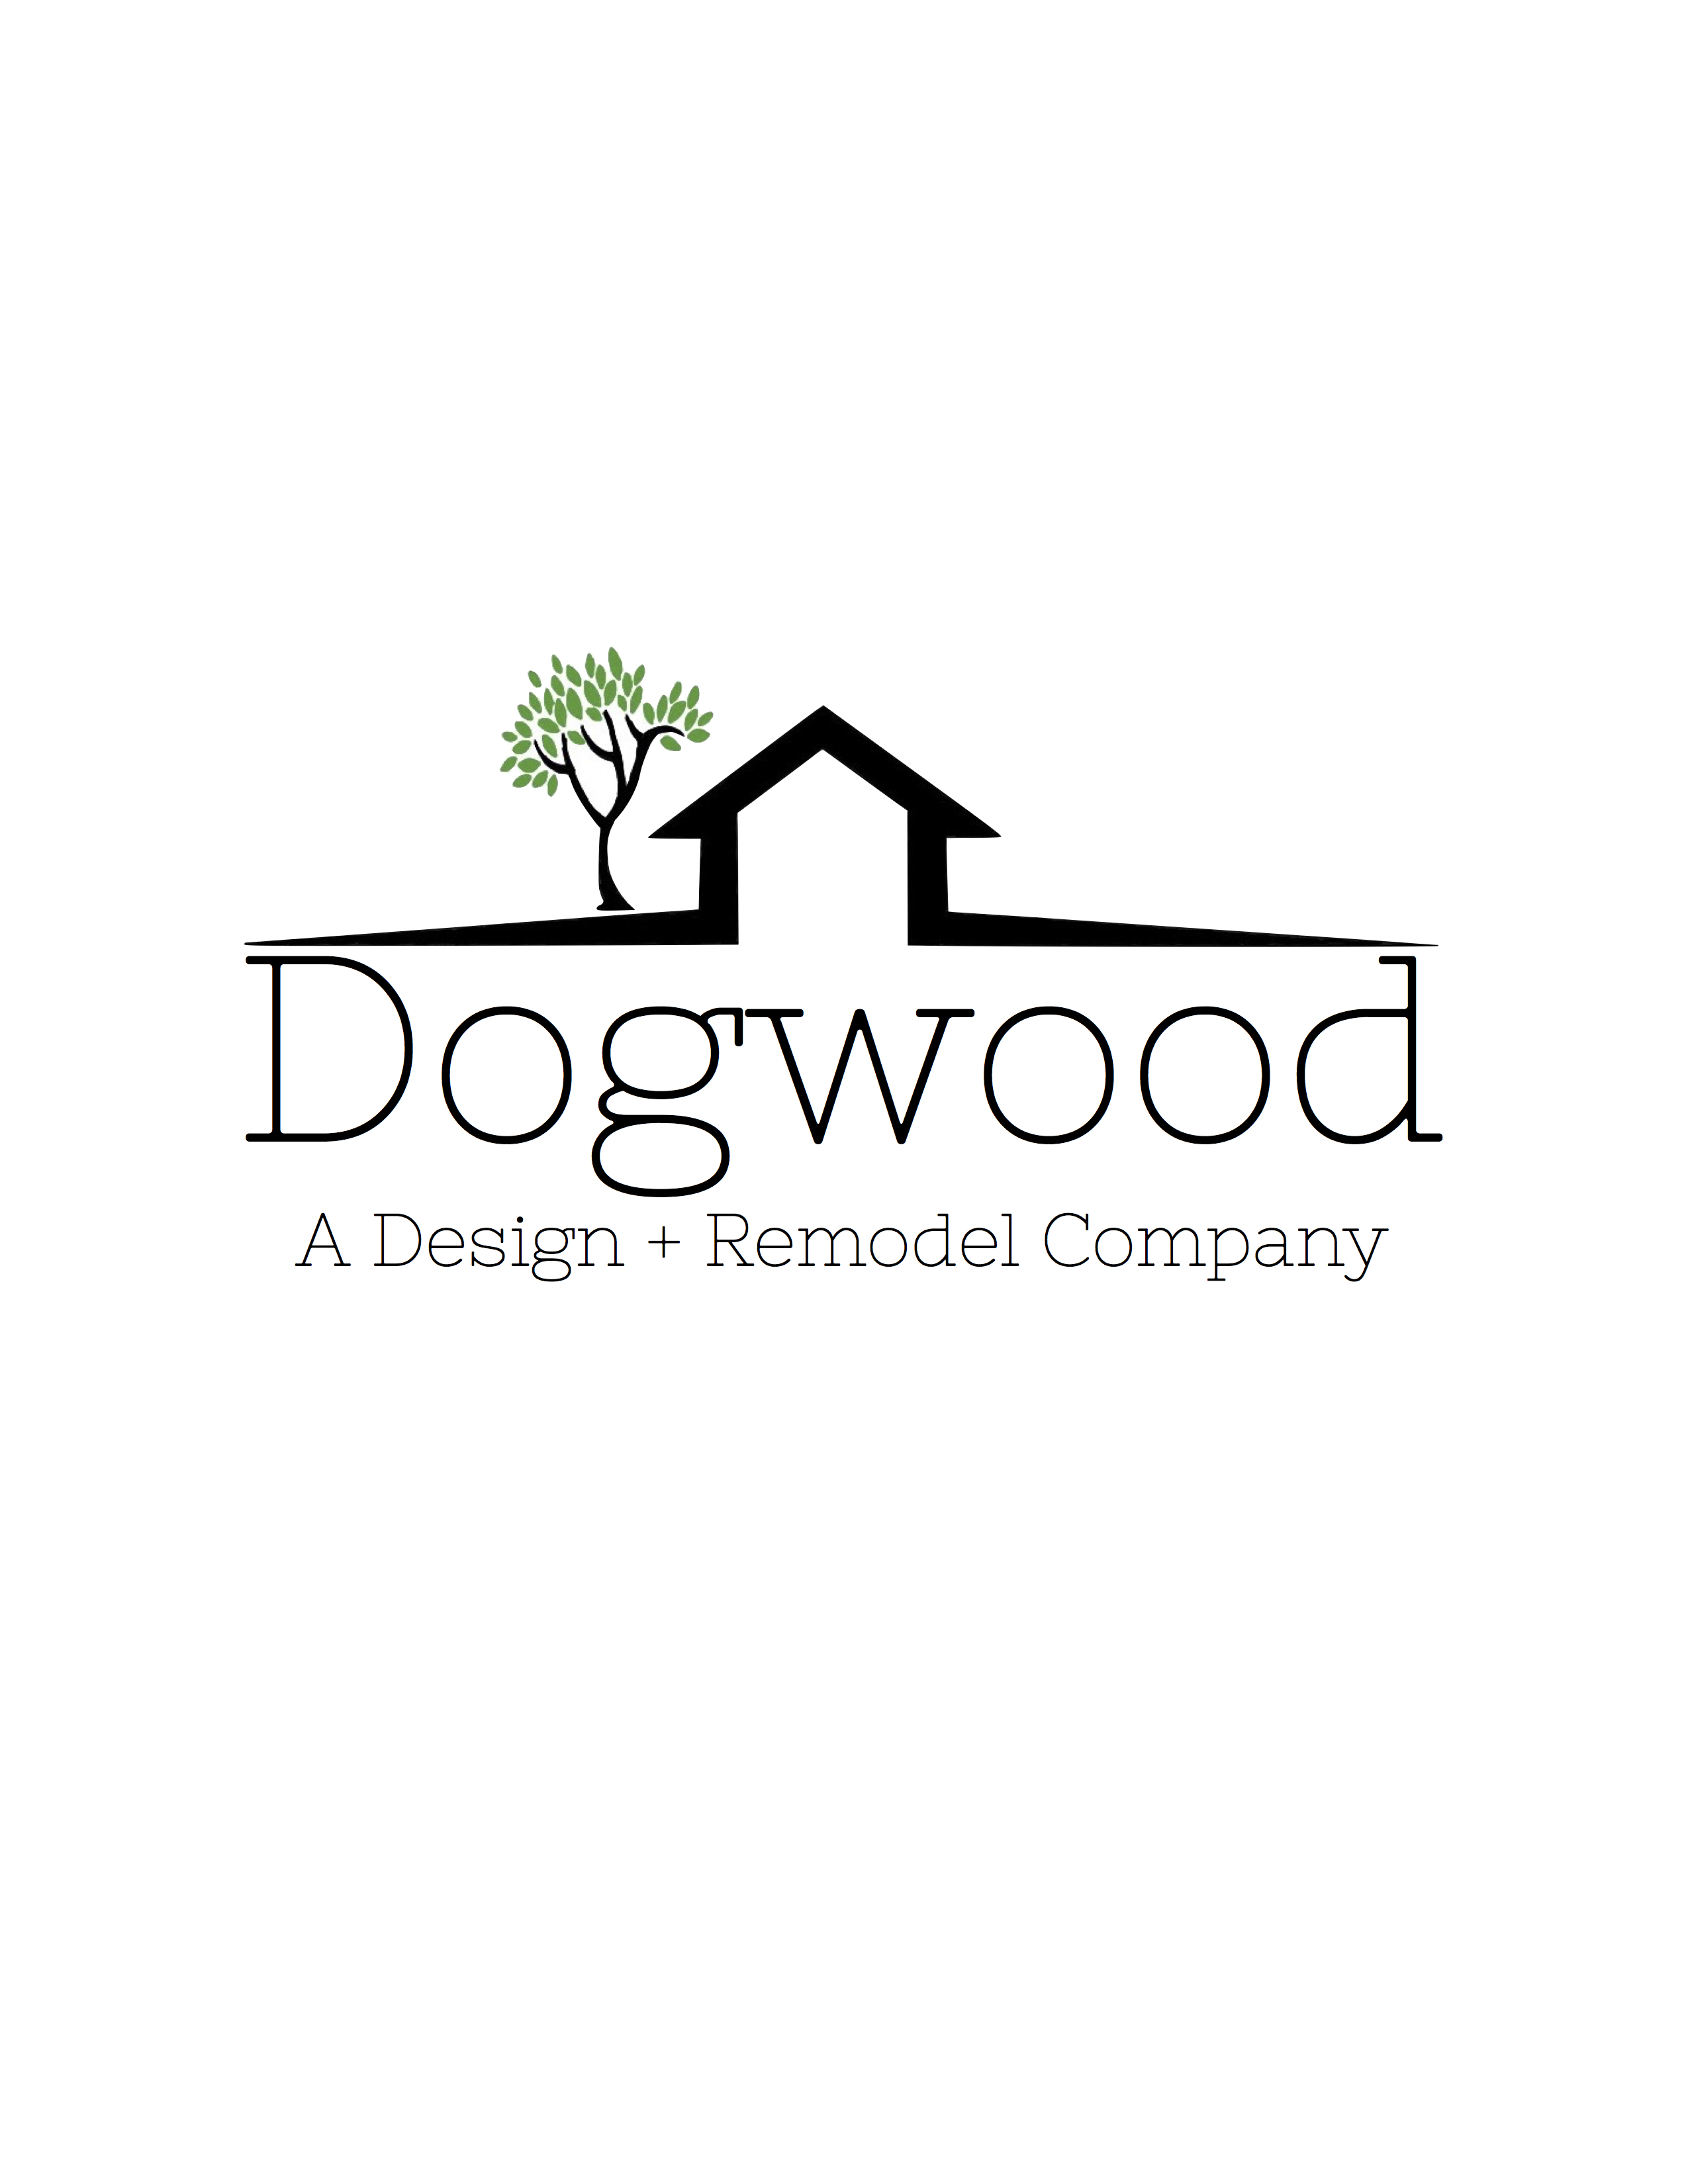 Dogwood Design & Remodel LLC Business Logo